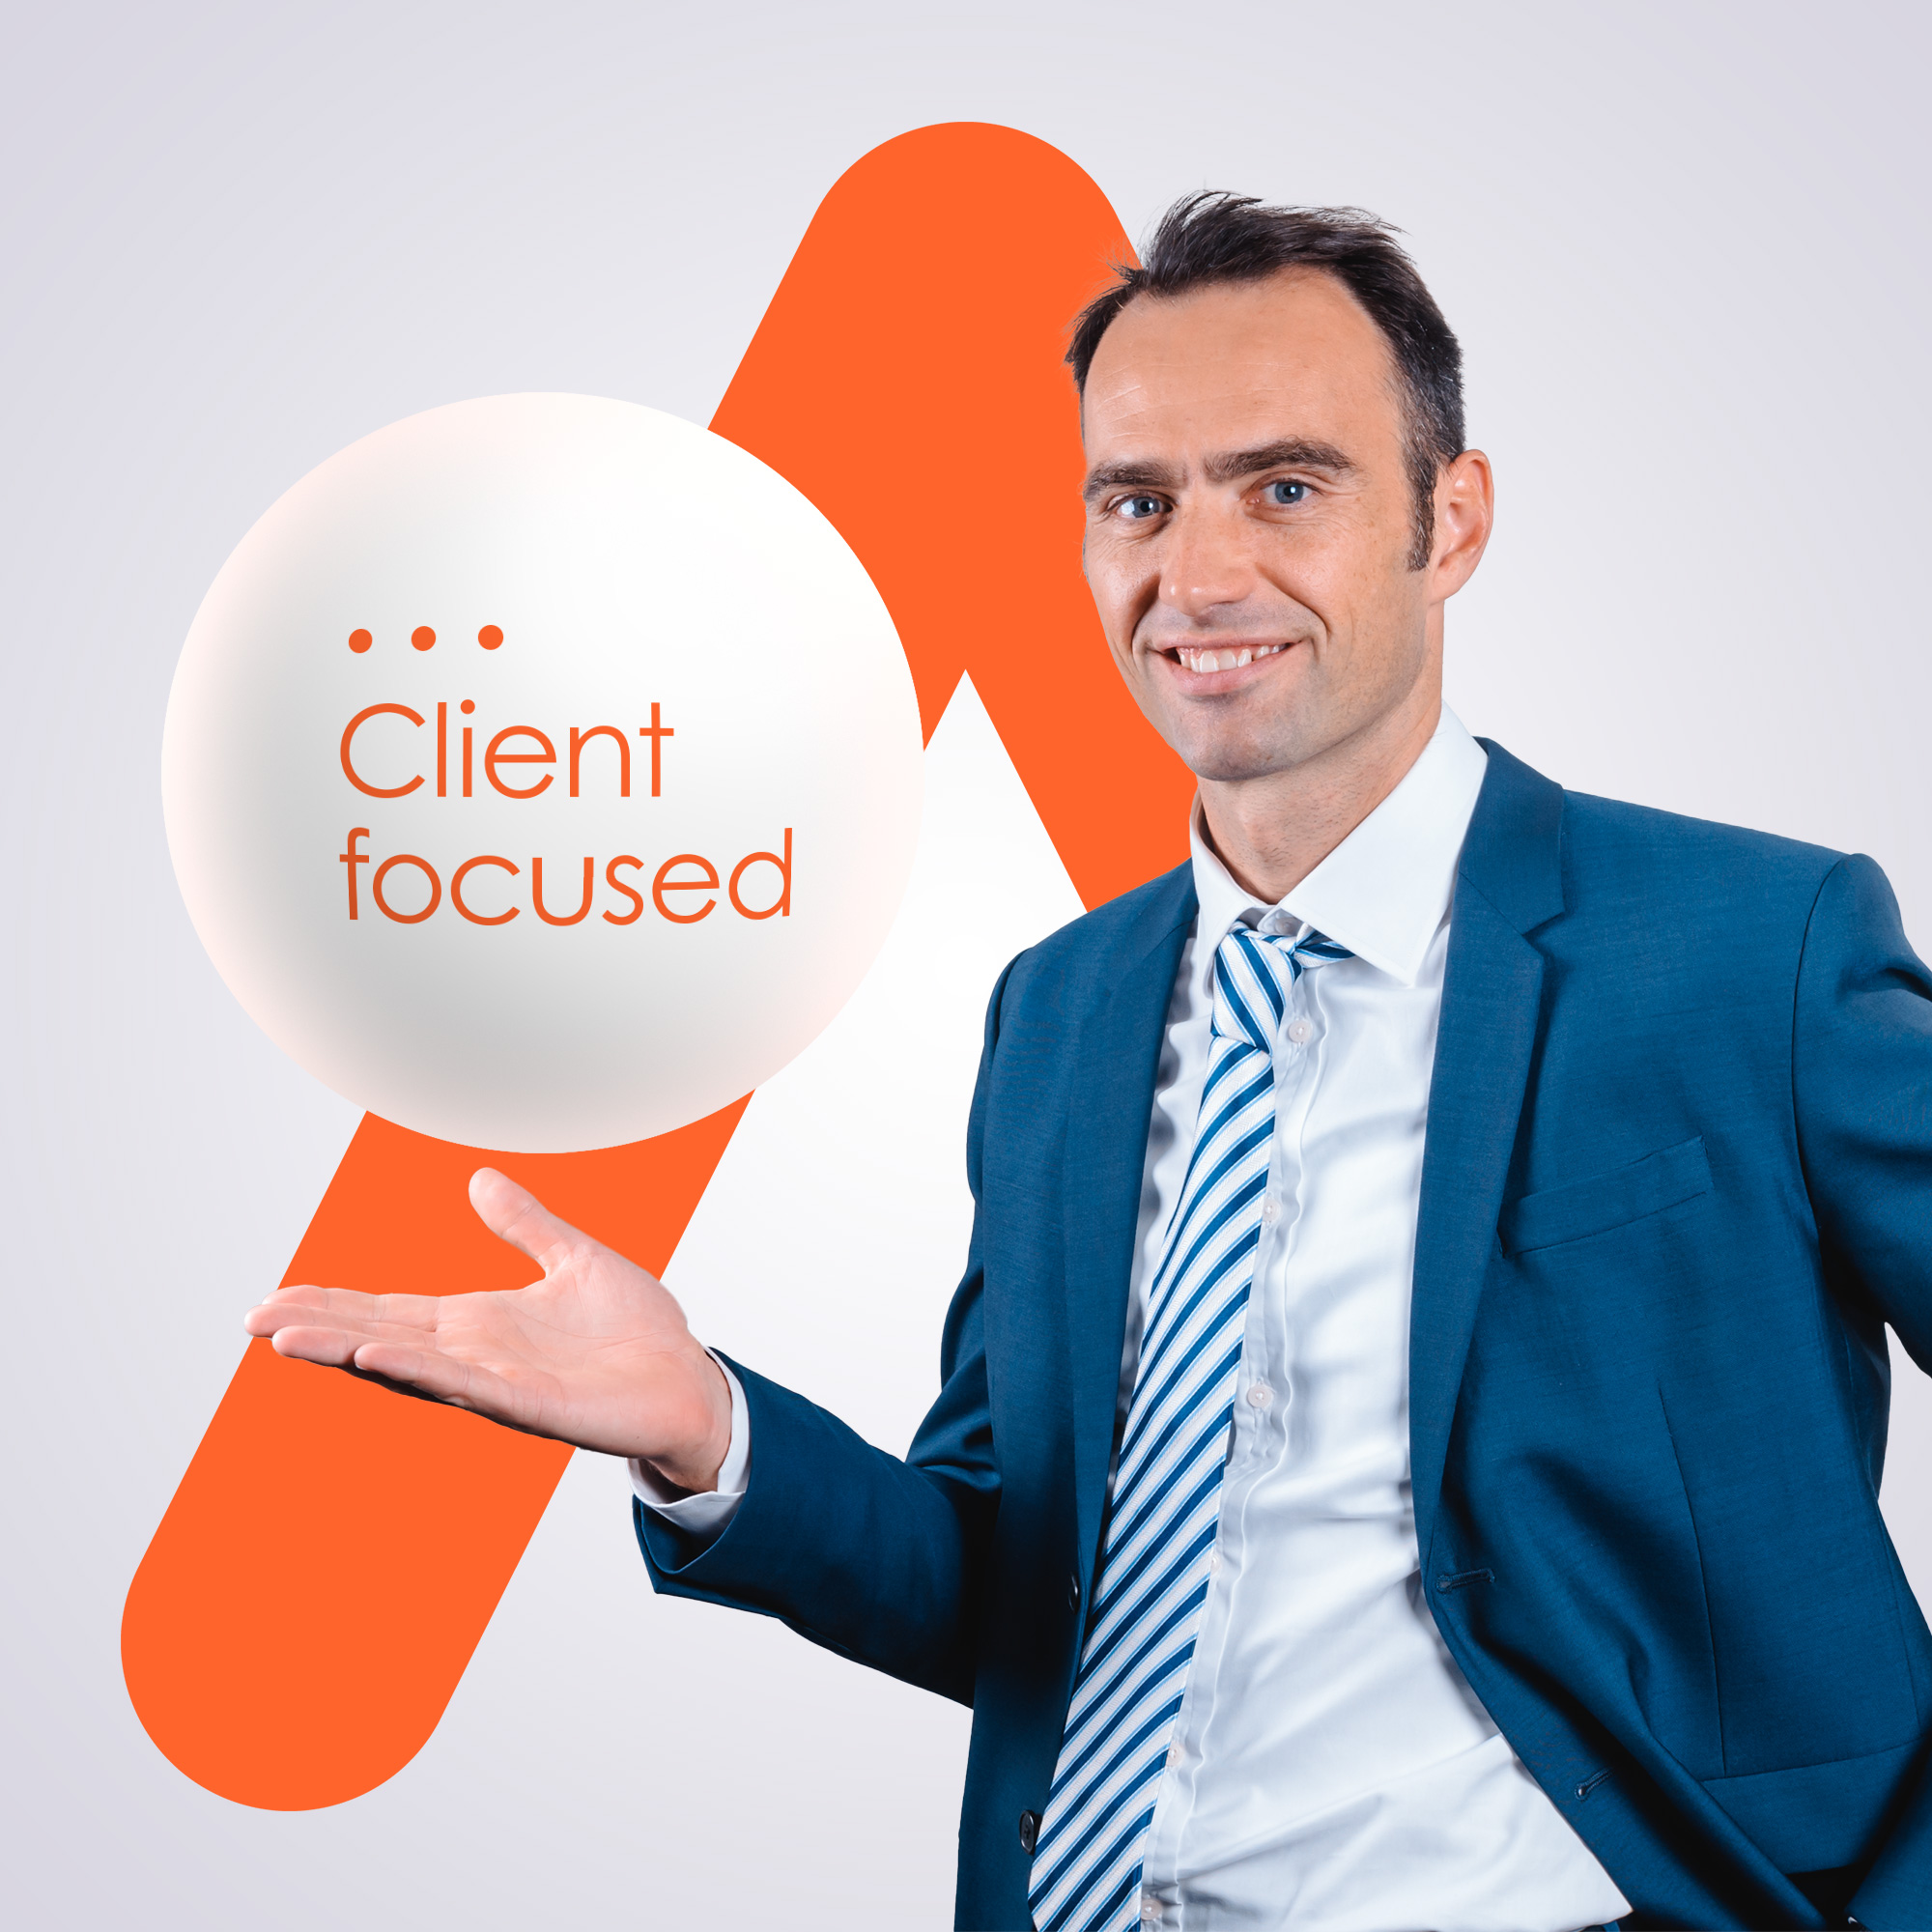 Get to know our IP specialists better : 6 questions to our Patent Attorney Johannes Wohlmuth